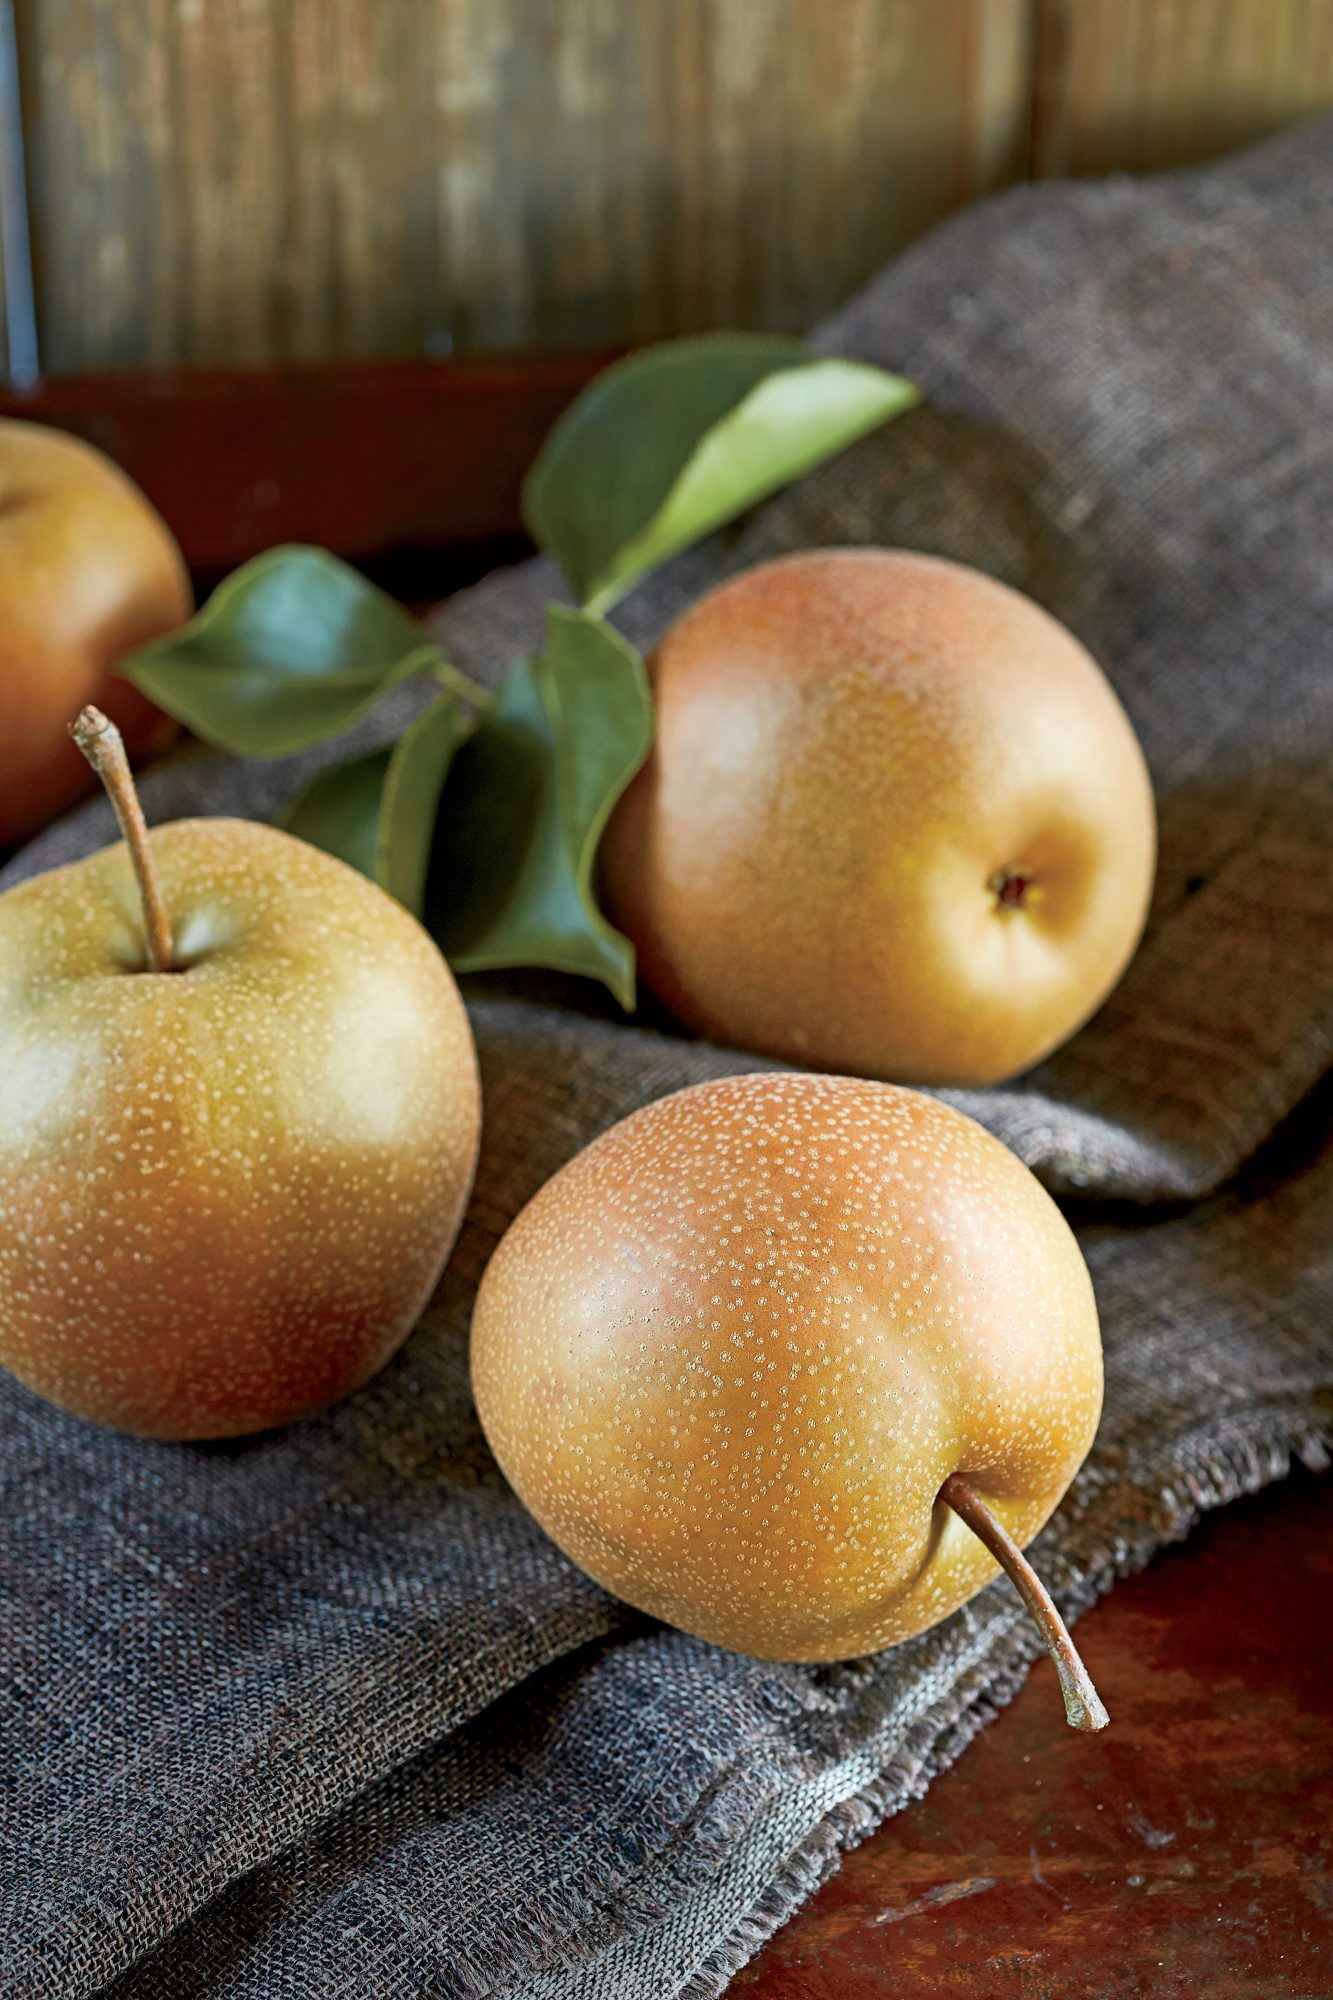 Relish These Pears Image